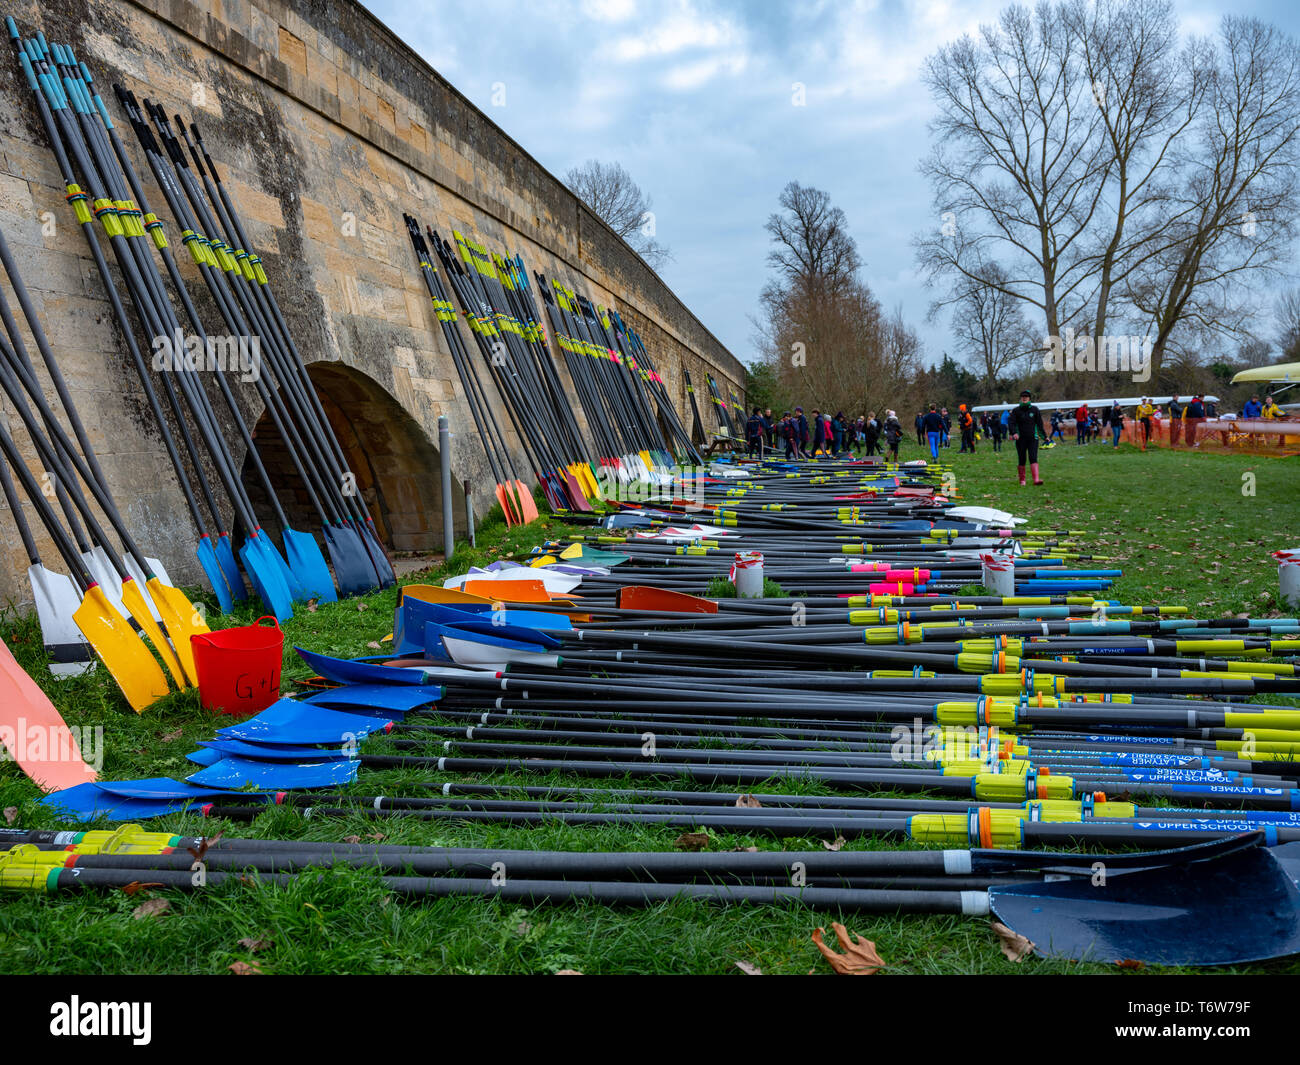 Wallingford/UK, November 25 2018:  Rowing/Sculling Blades lying on the ground before the event at Wallingford, Oxfordshire, England, UK. - Stock Image